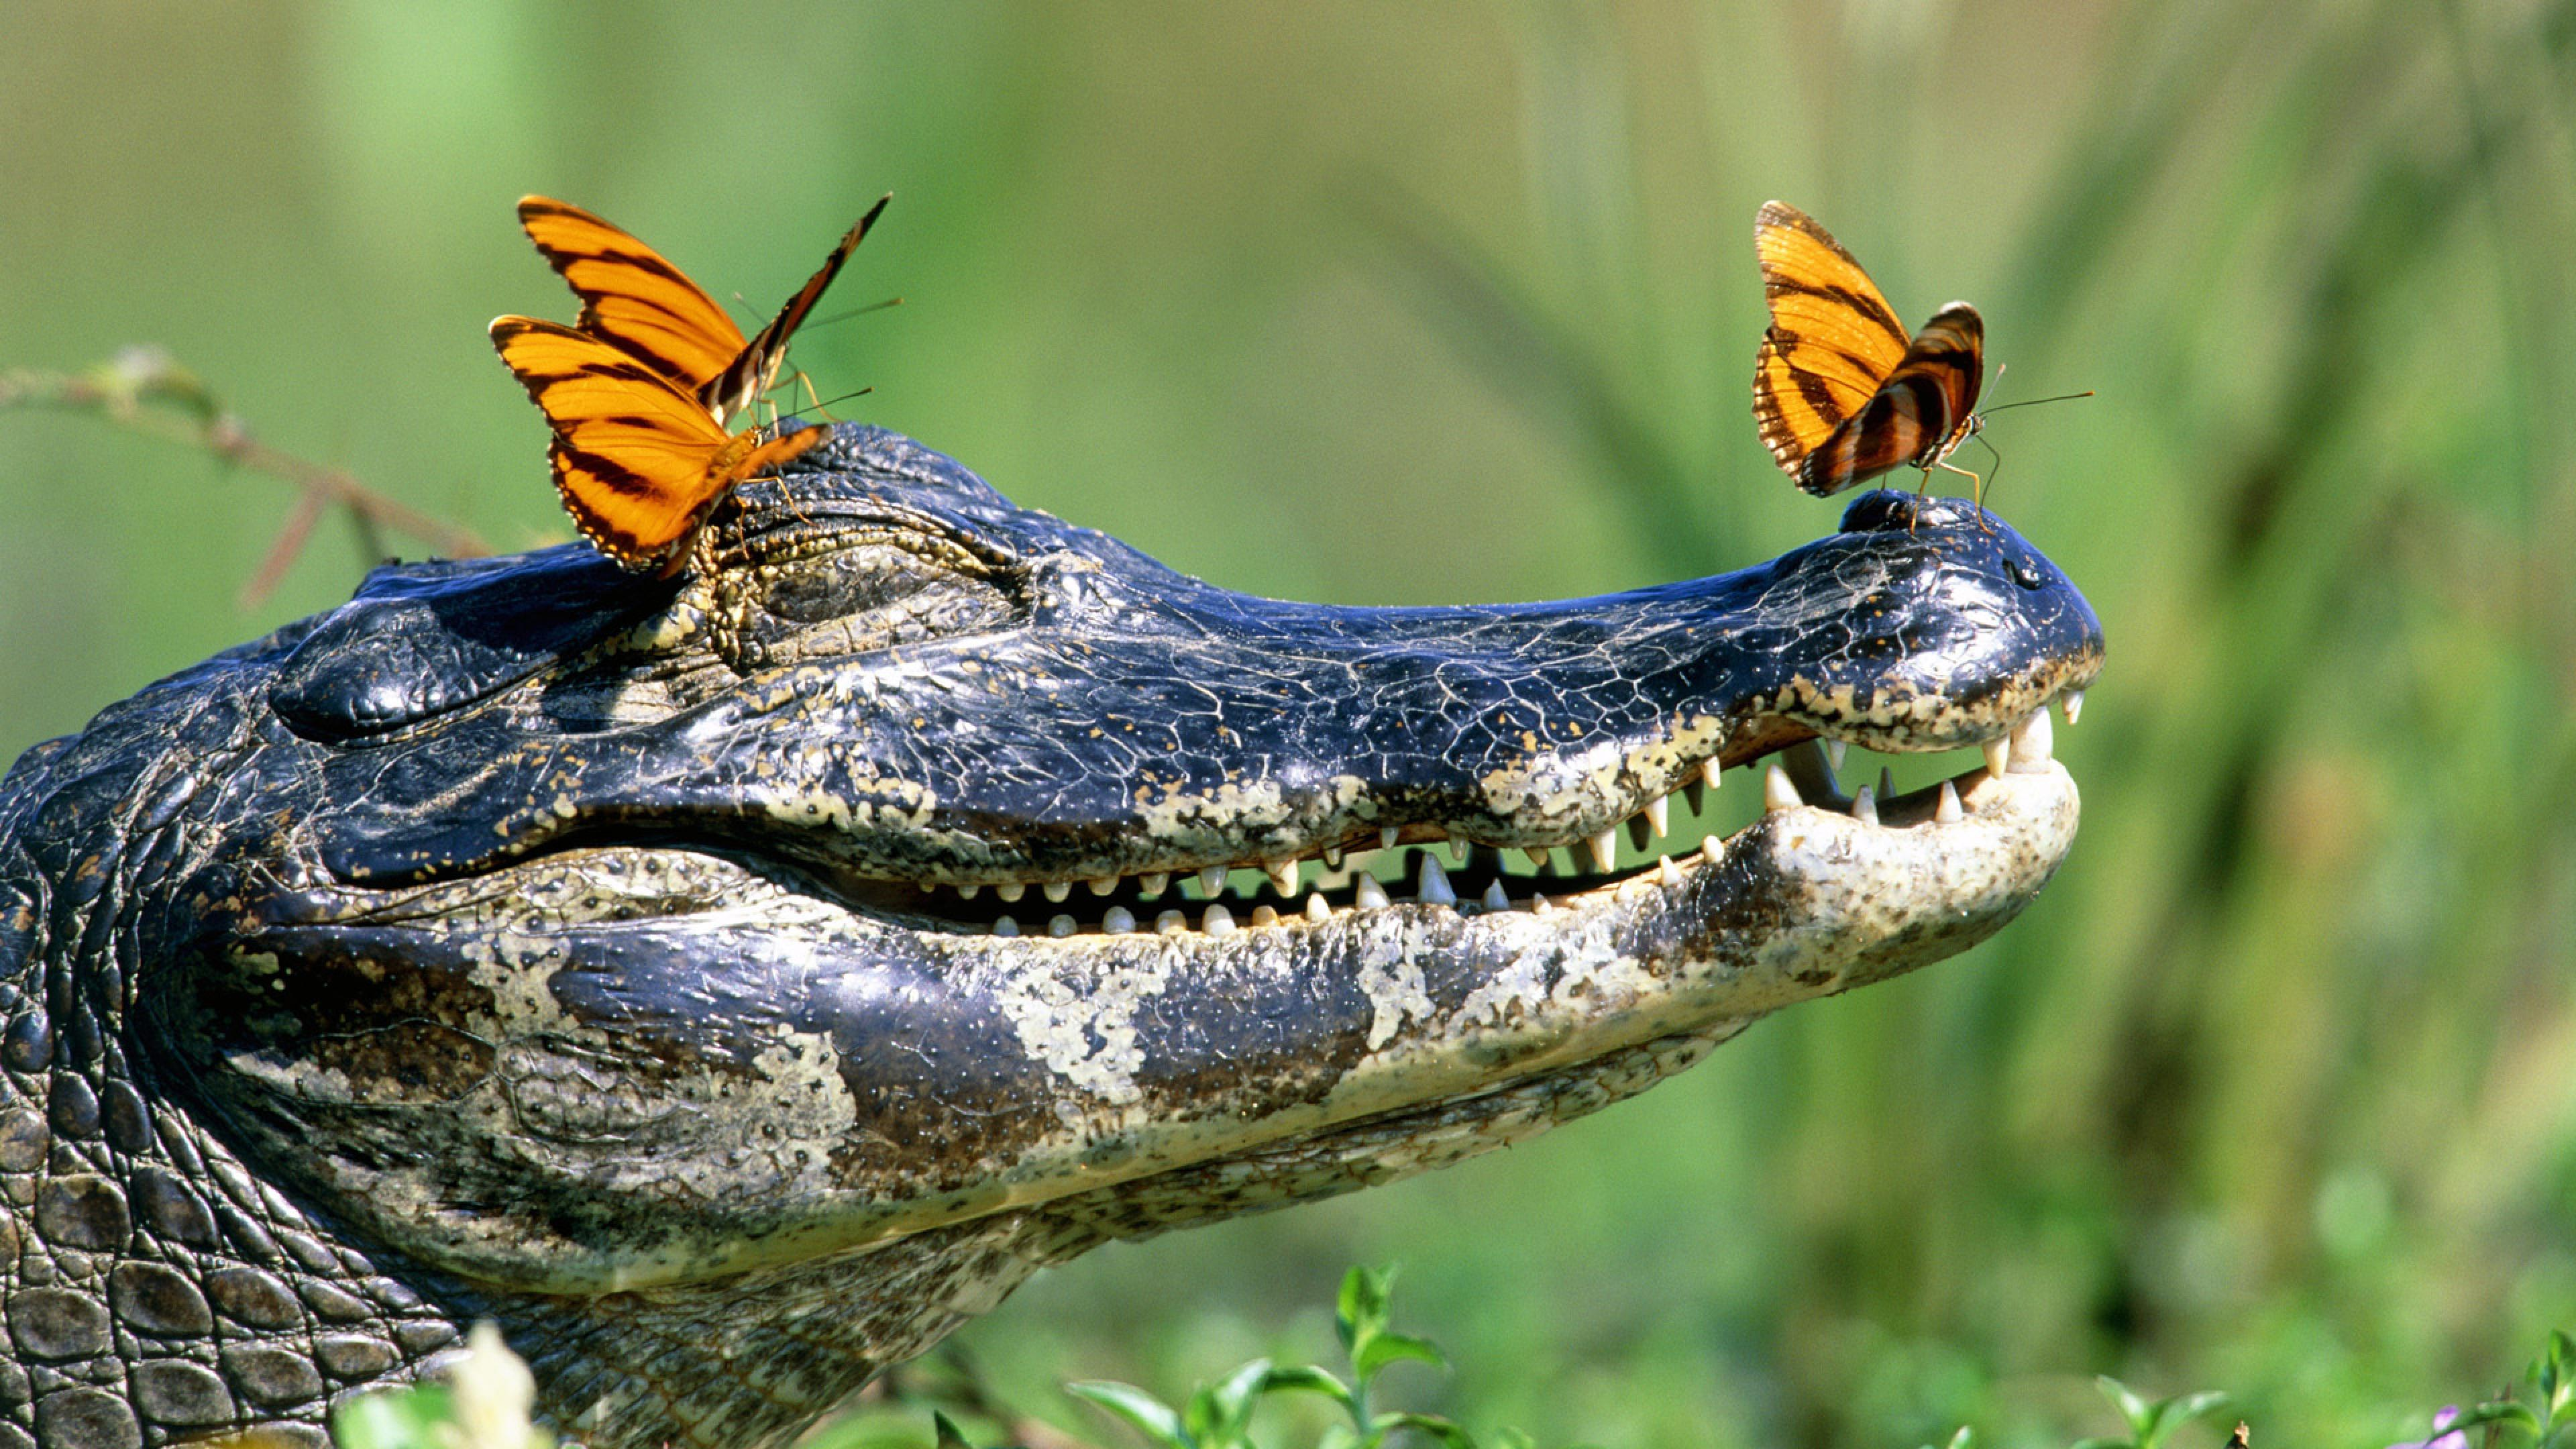 Alligator and butterfly